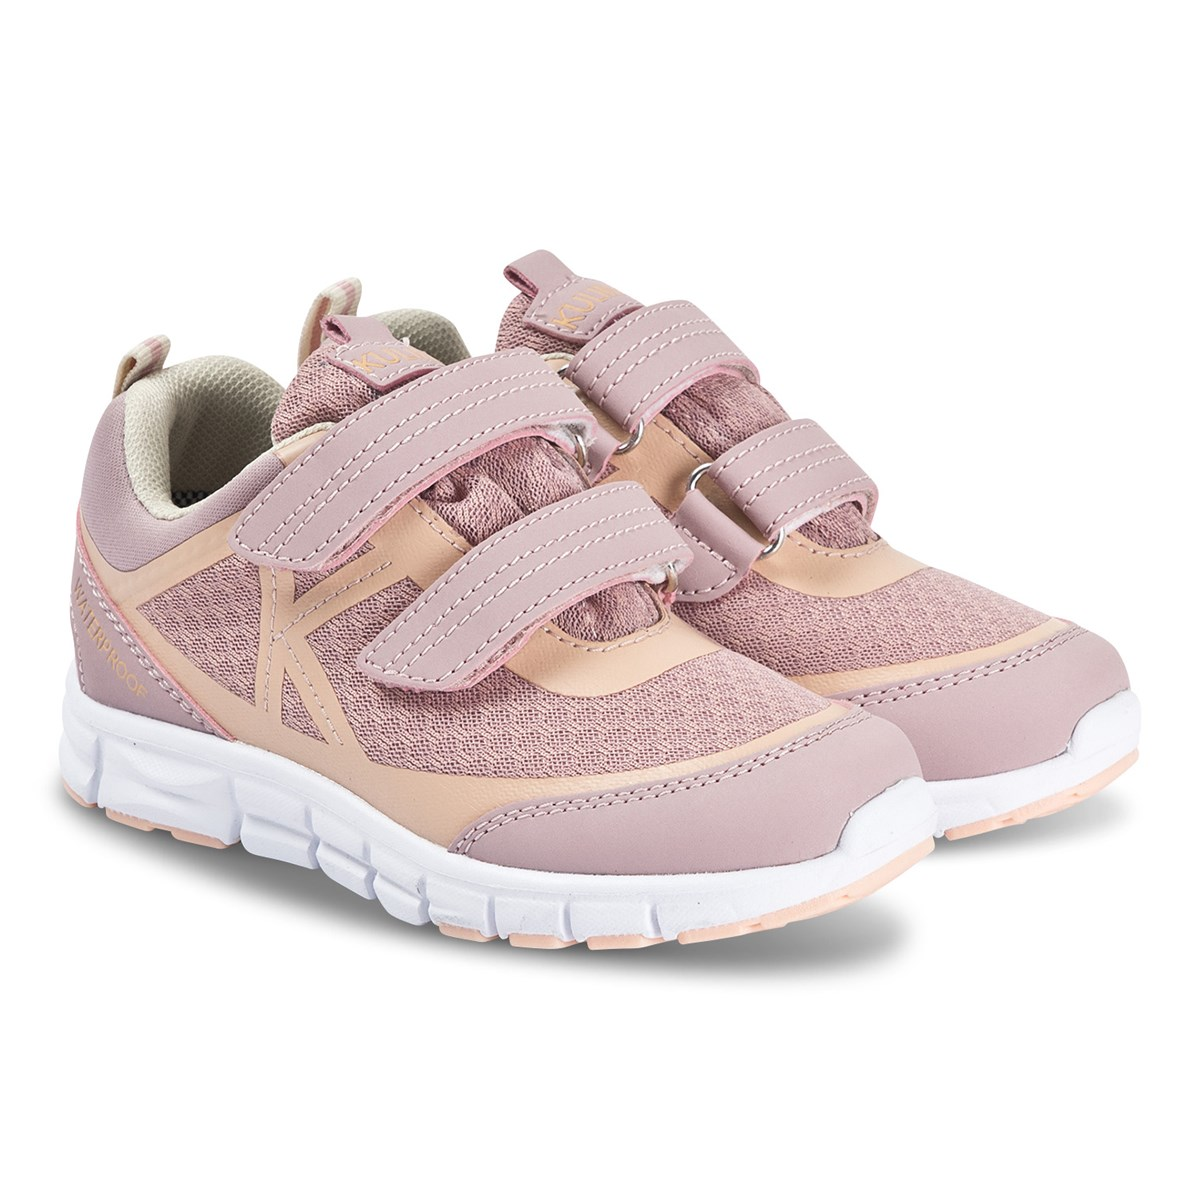 Kuling Woody Rose Seattle Trainers